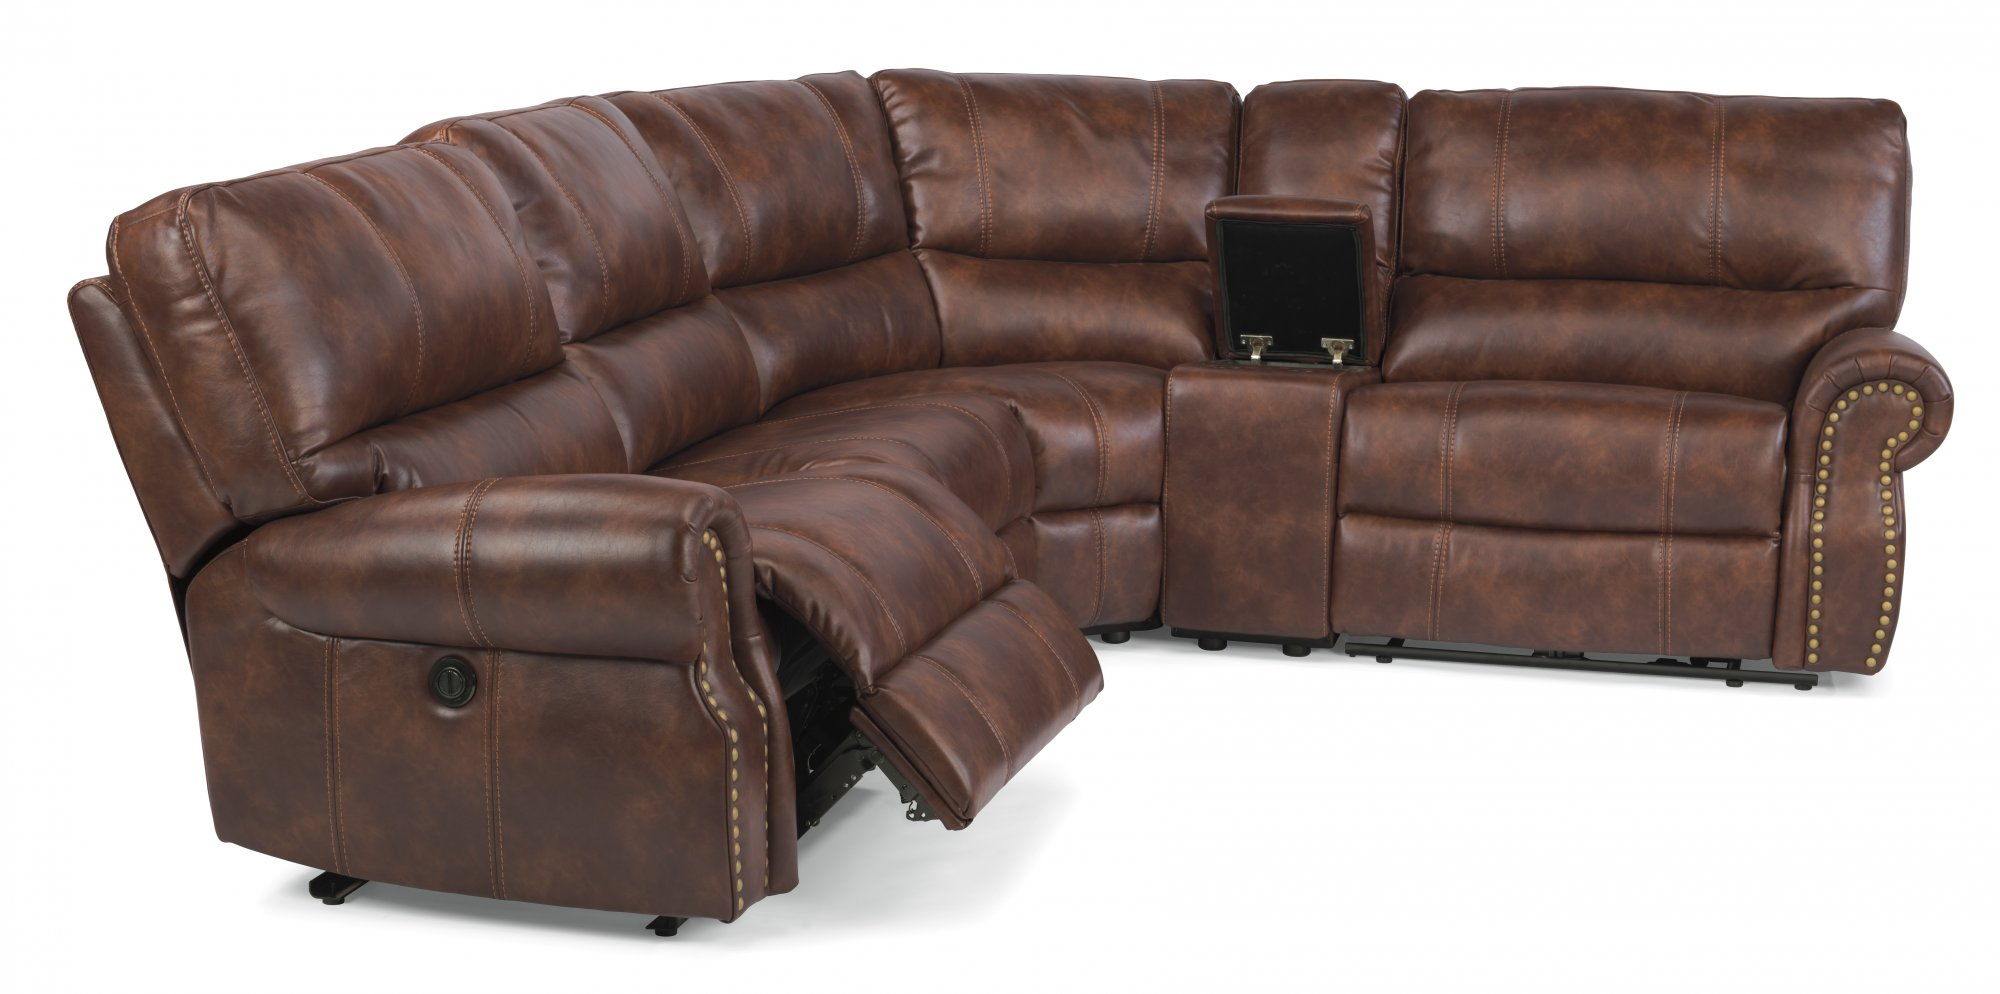 sectional furniture sect living flexsteelleather flexsteel sectionals large room